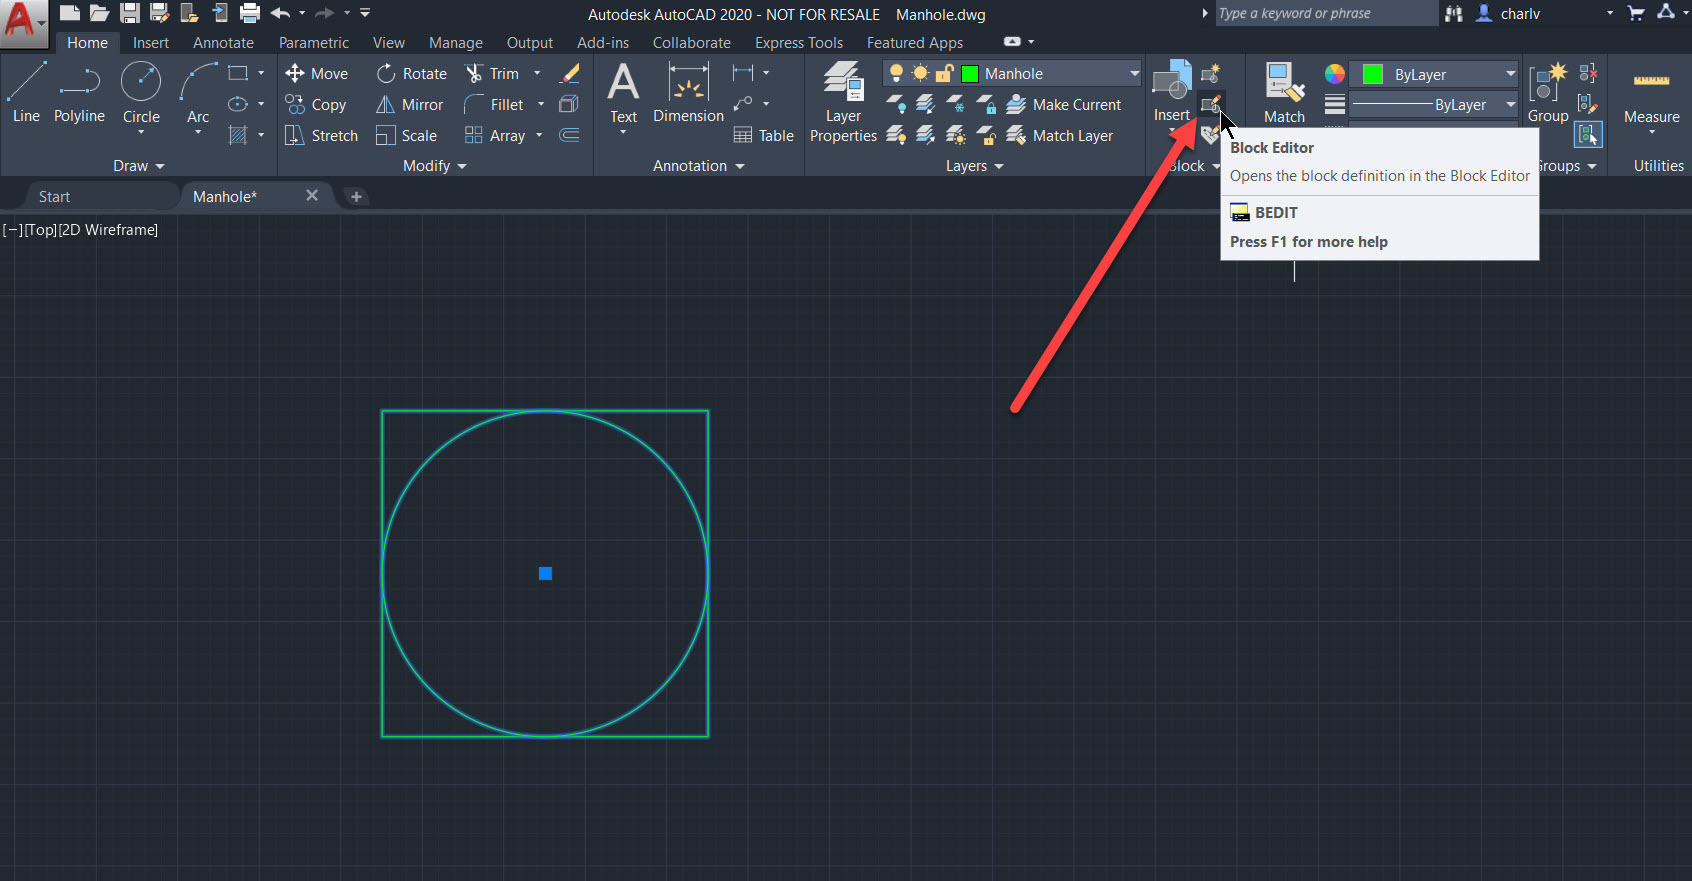 How to add attributes to an AutoCAD 2020 block and export